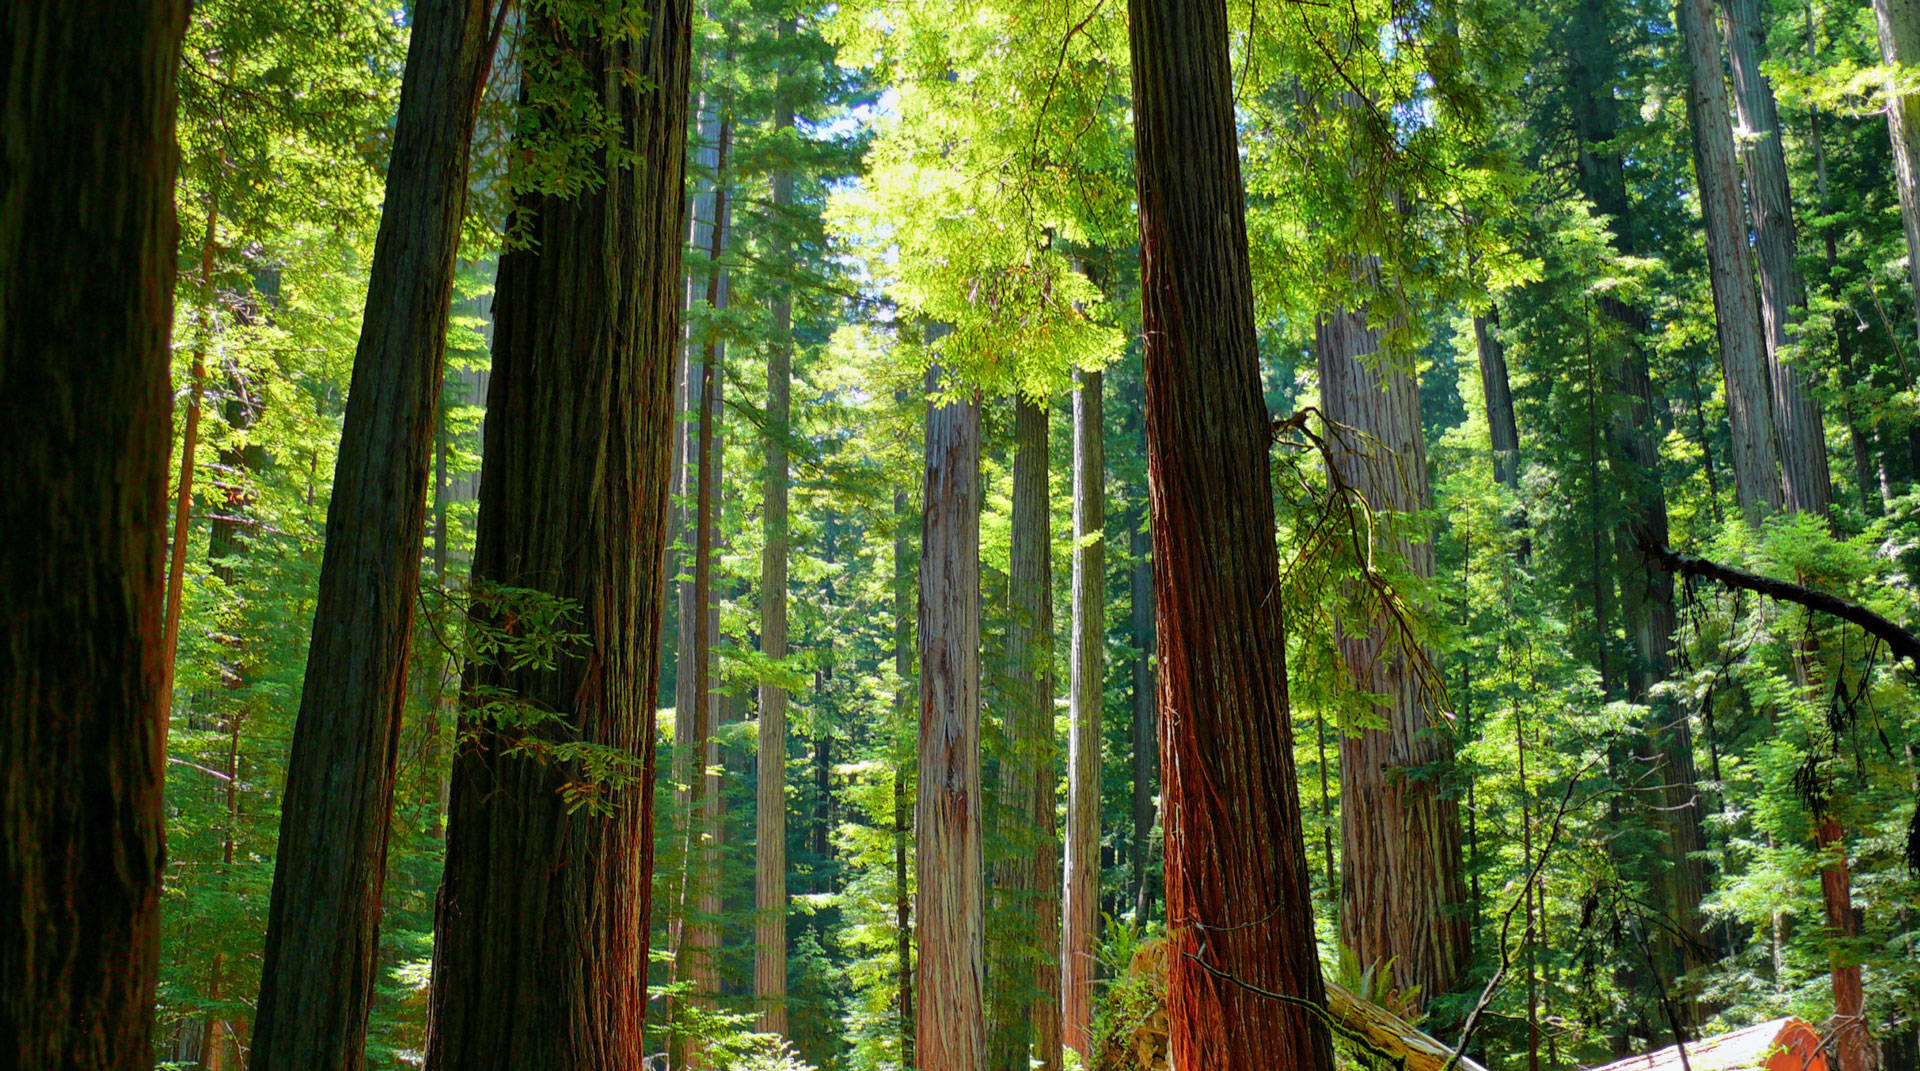 Humboldt Redwoods State Park, in Humboldt County. California's state park system has a backlog of repairs projected to cost more than $1 billion. Rene Rivers/Flickr